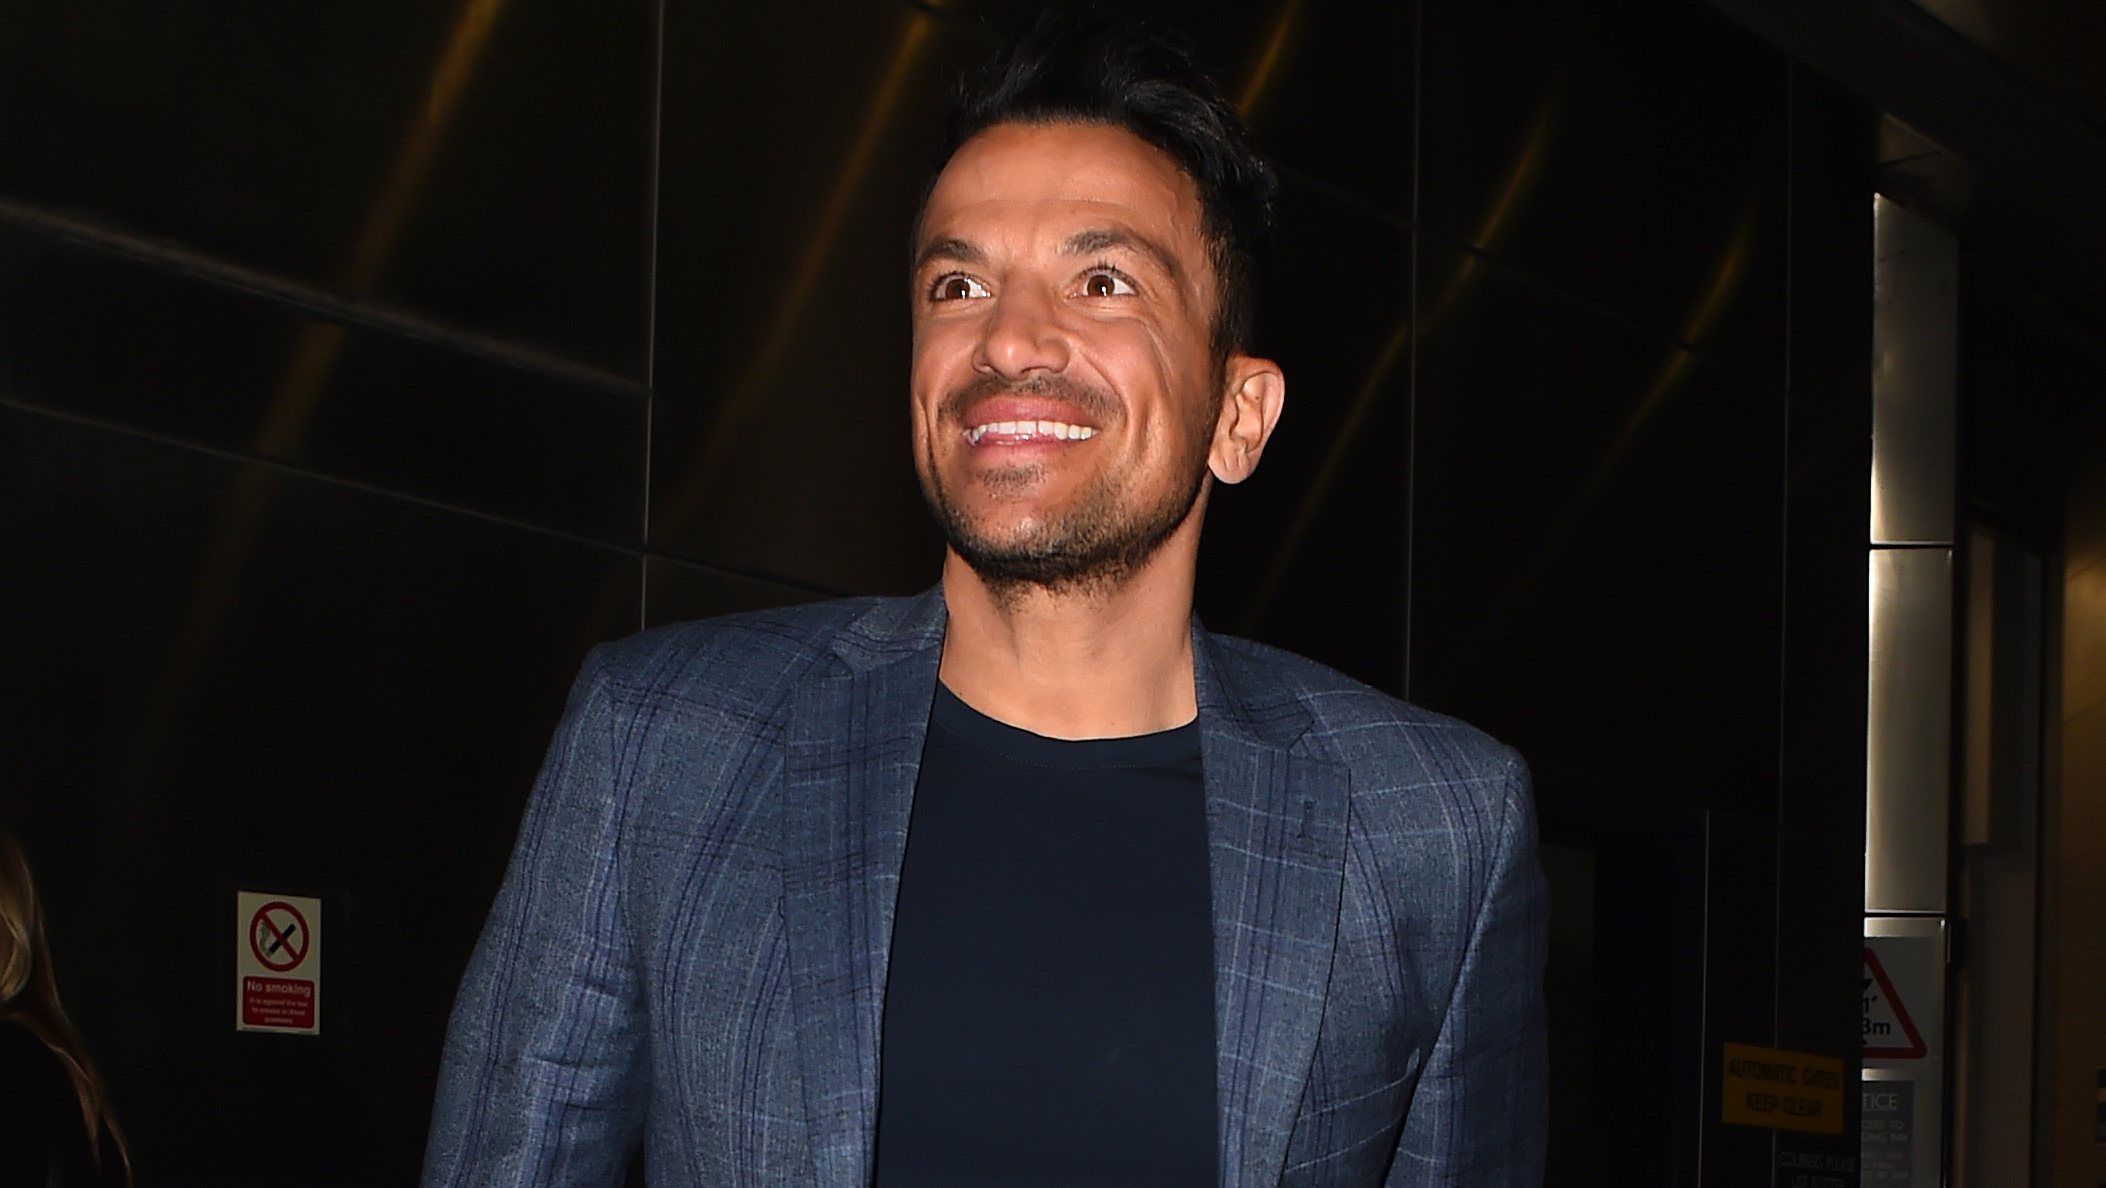 Peter Andre opens up about rivalry with Ant and Dec